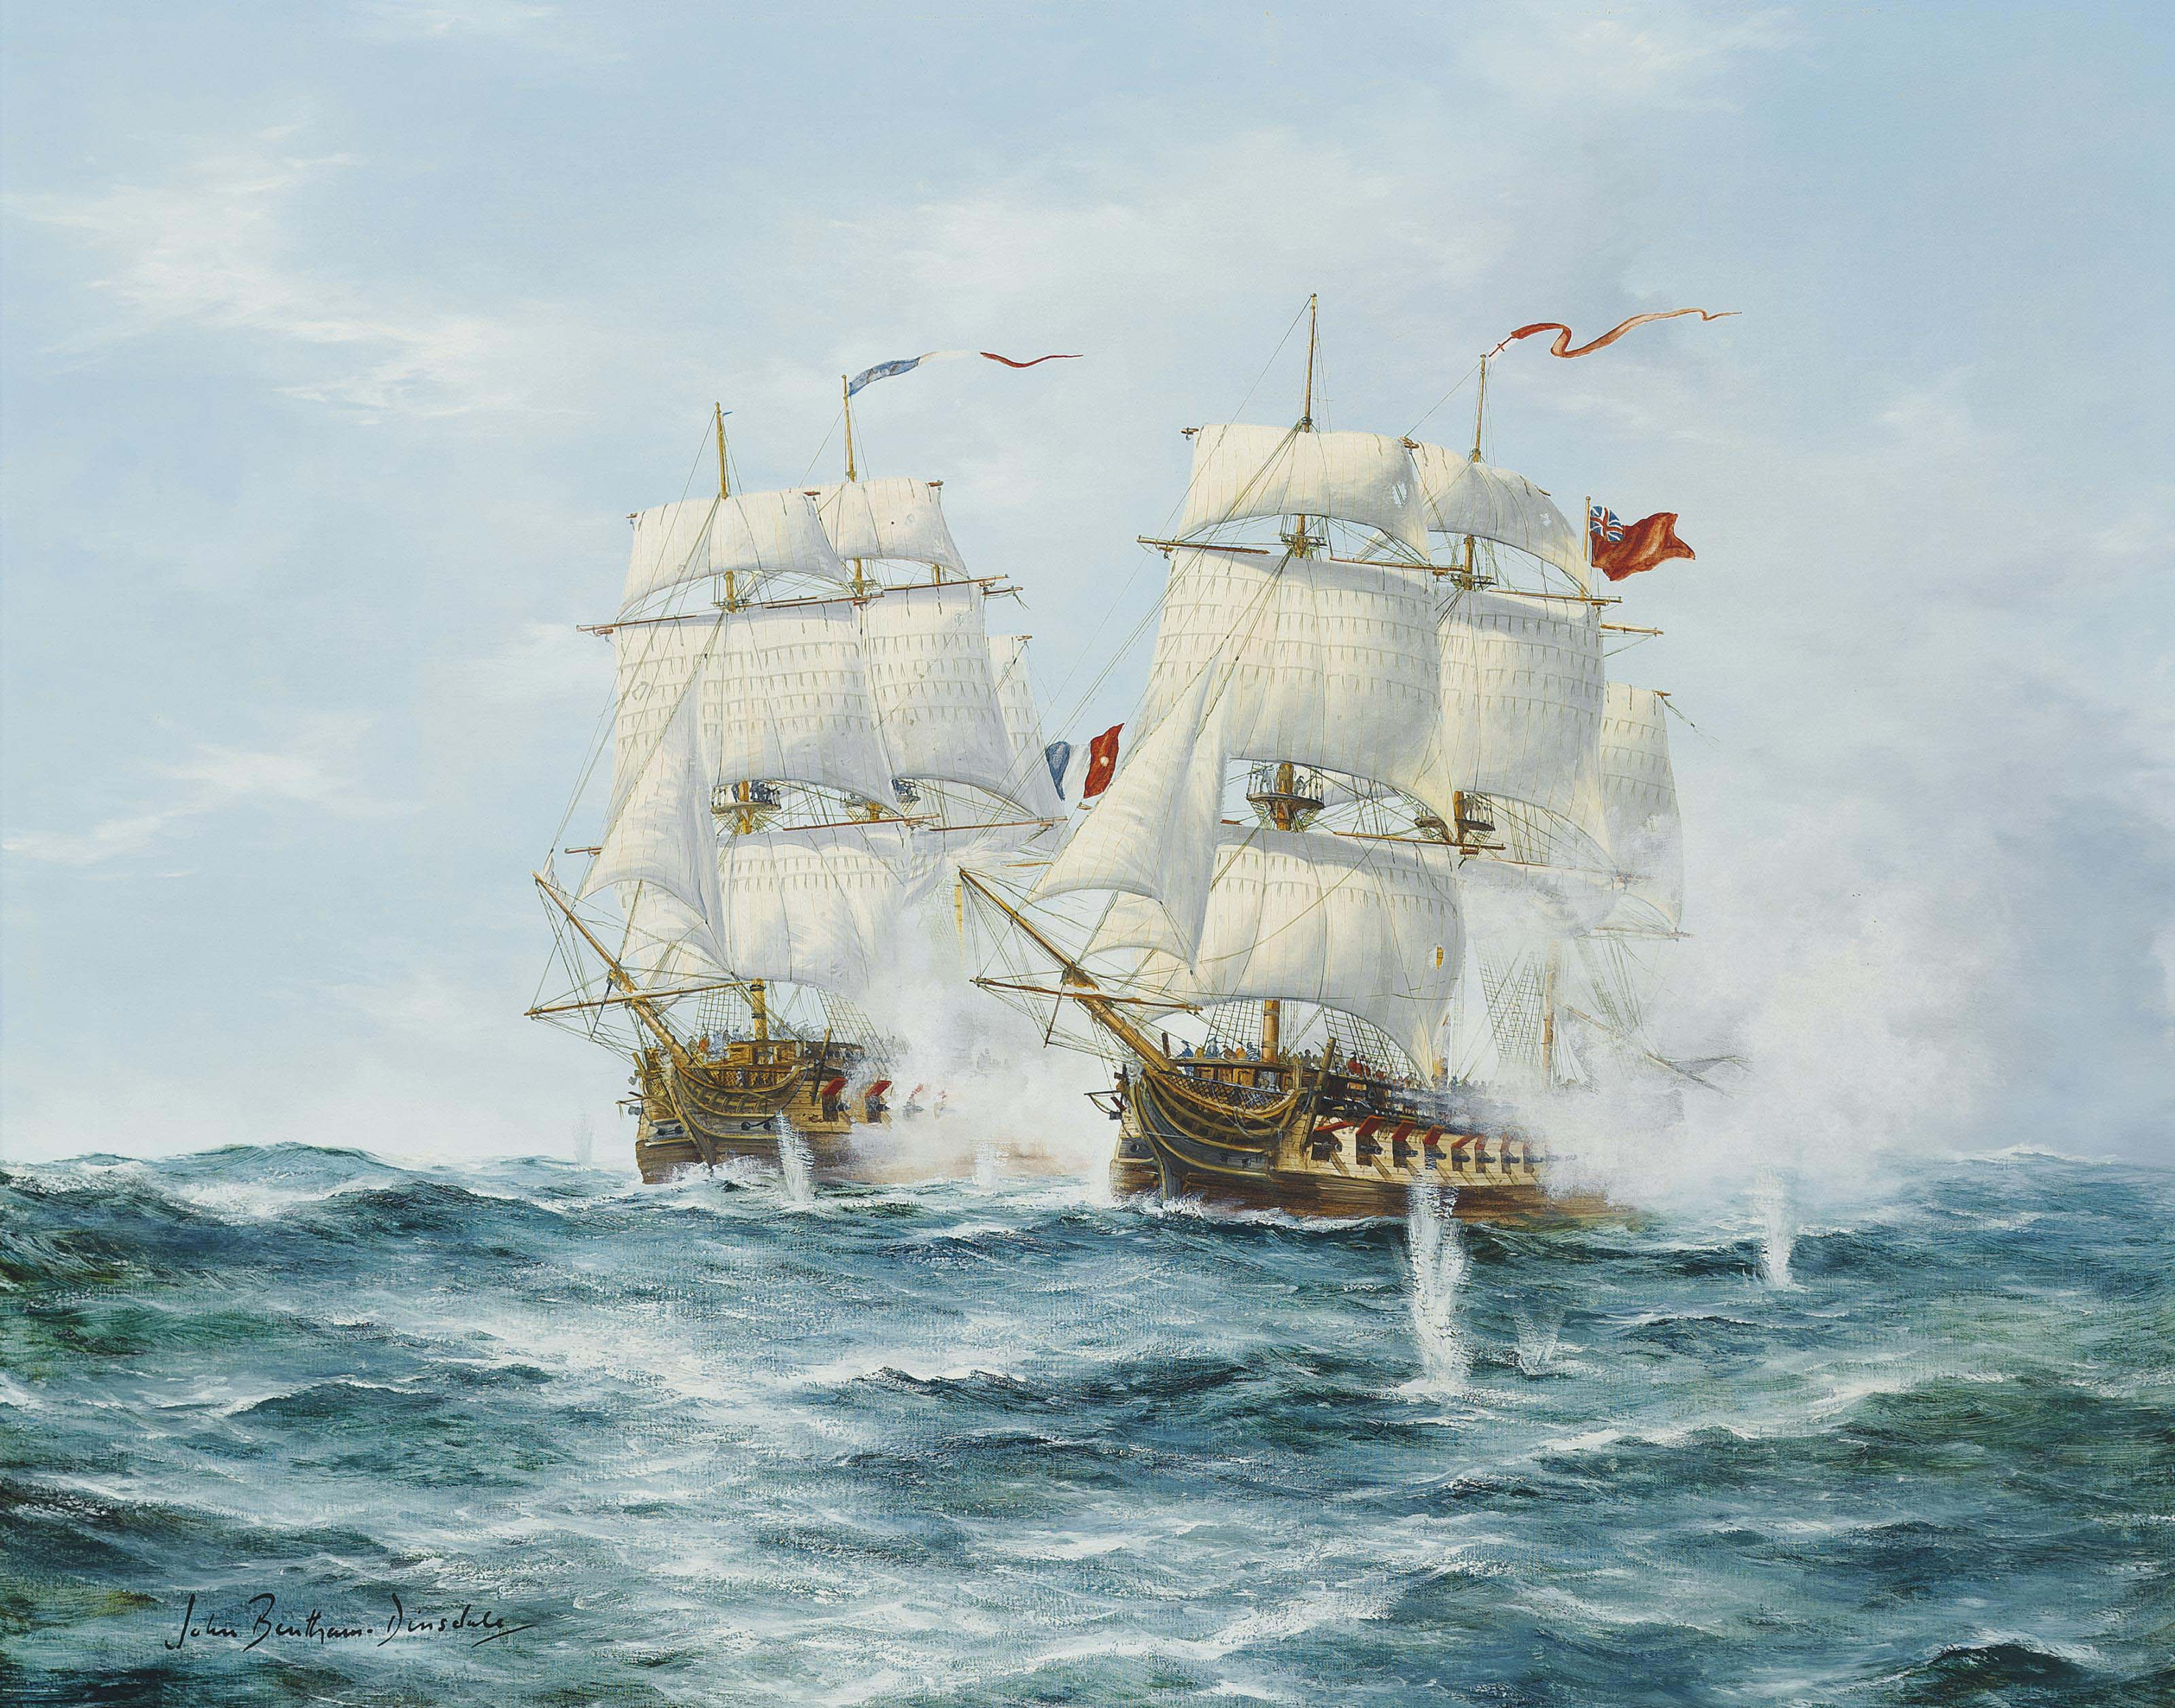 H.M.S. Dryad engaging the French frigate Prosperine, 13th June 1796